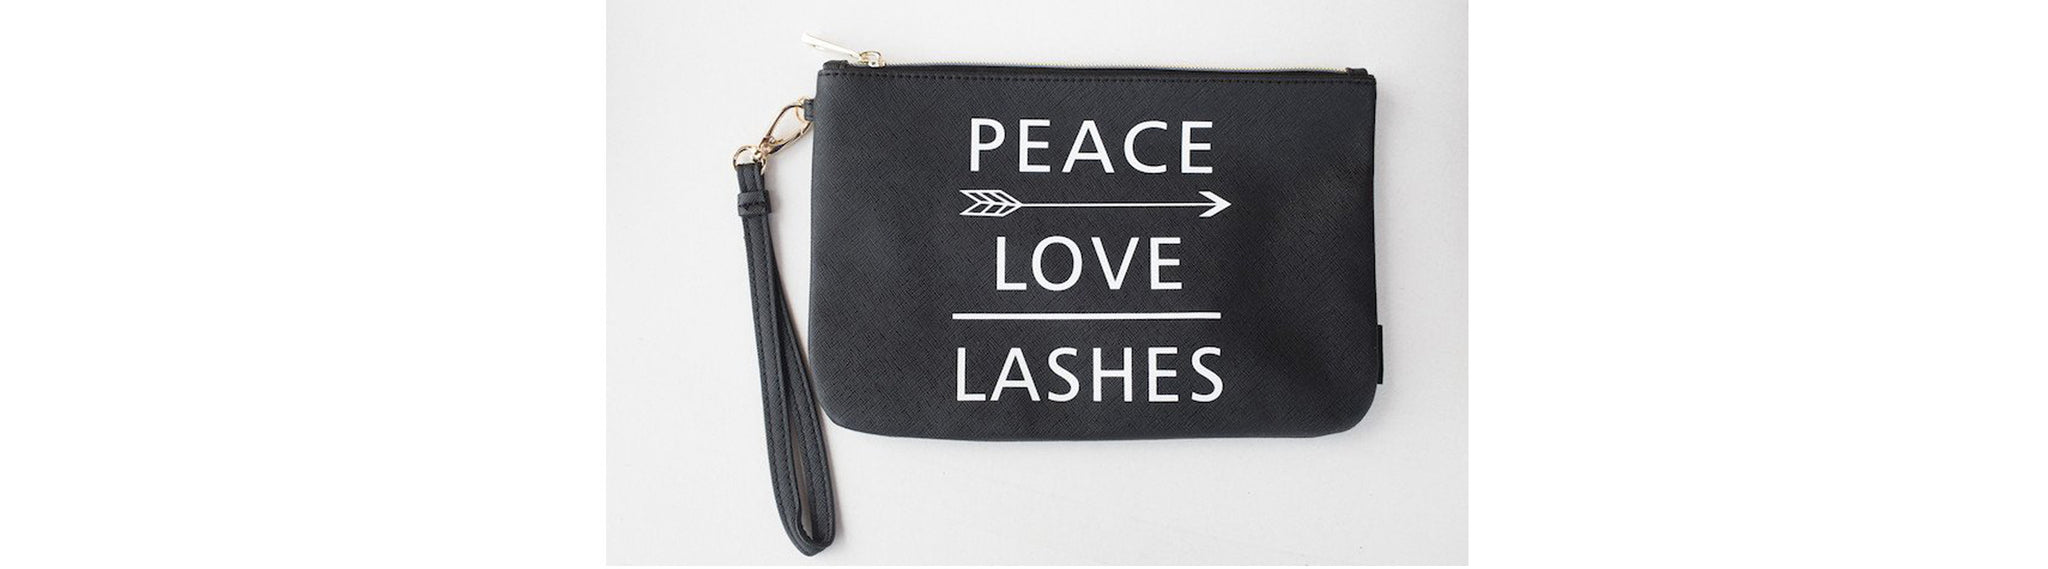 LARGE WRISTLET MAKEUP BAG PEACE LOVE LASHES